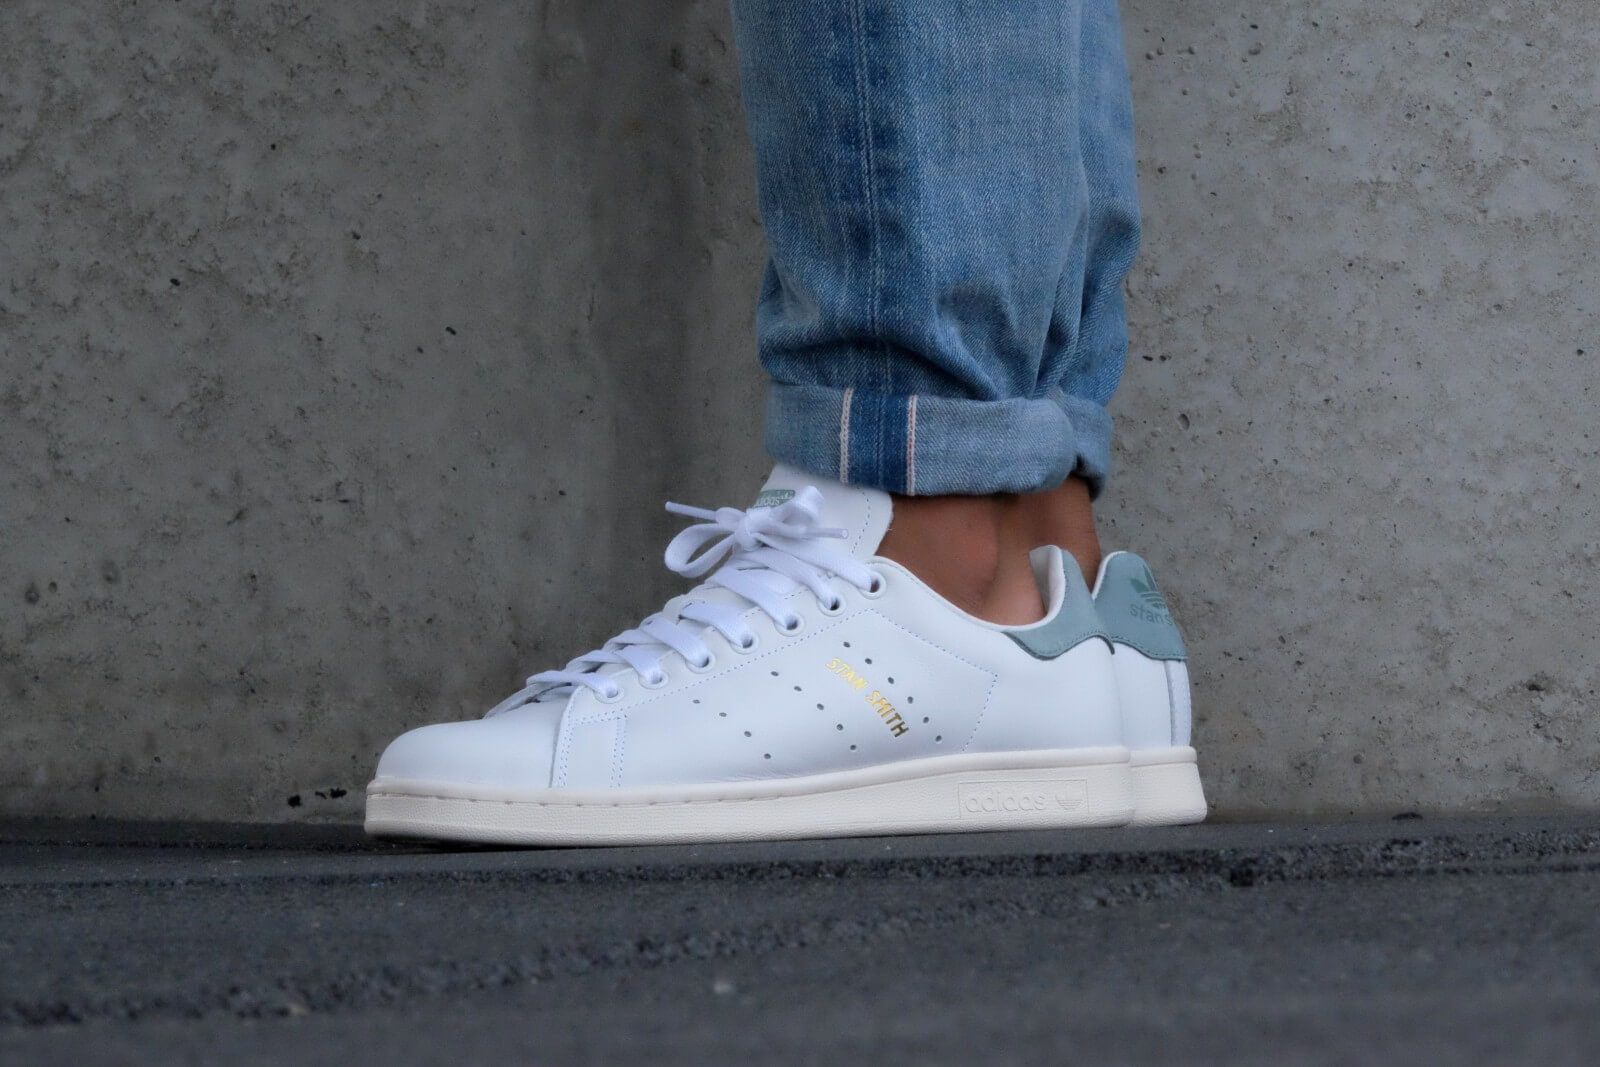 competitive price superior quality presenting Adidas FTW Stan Smith S80025 | Ό,τι θέλω να αγοράσω